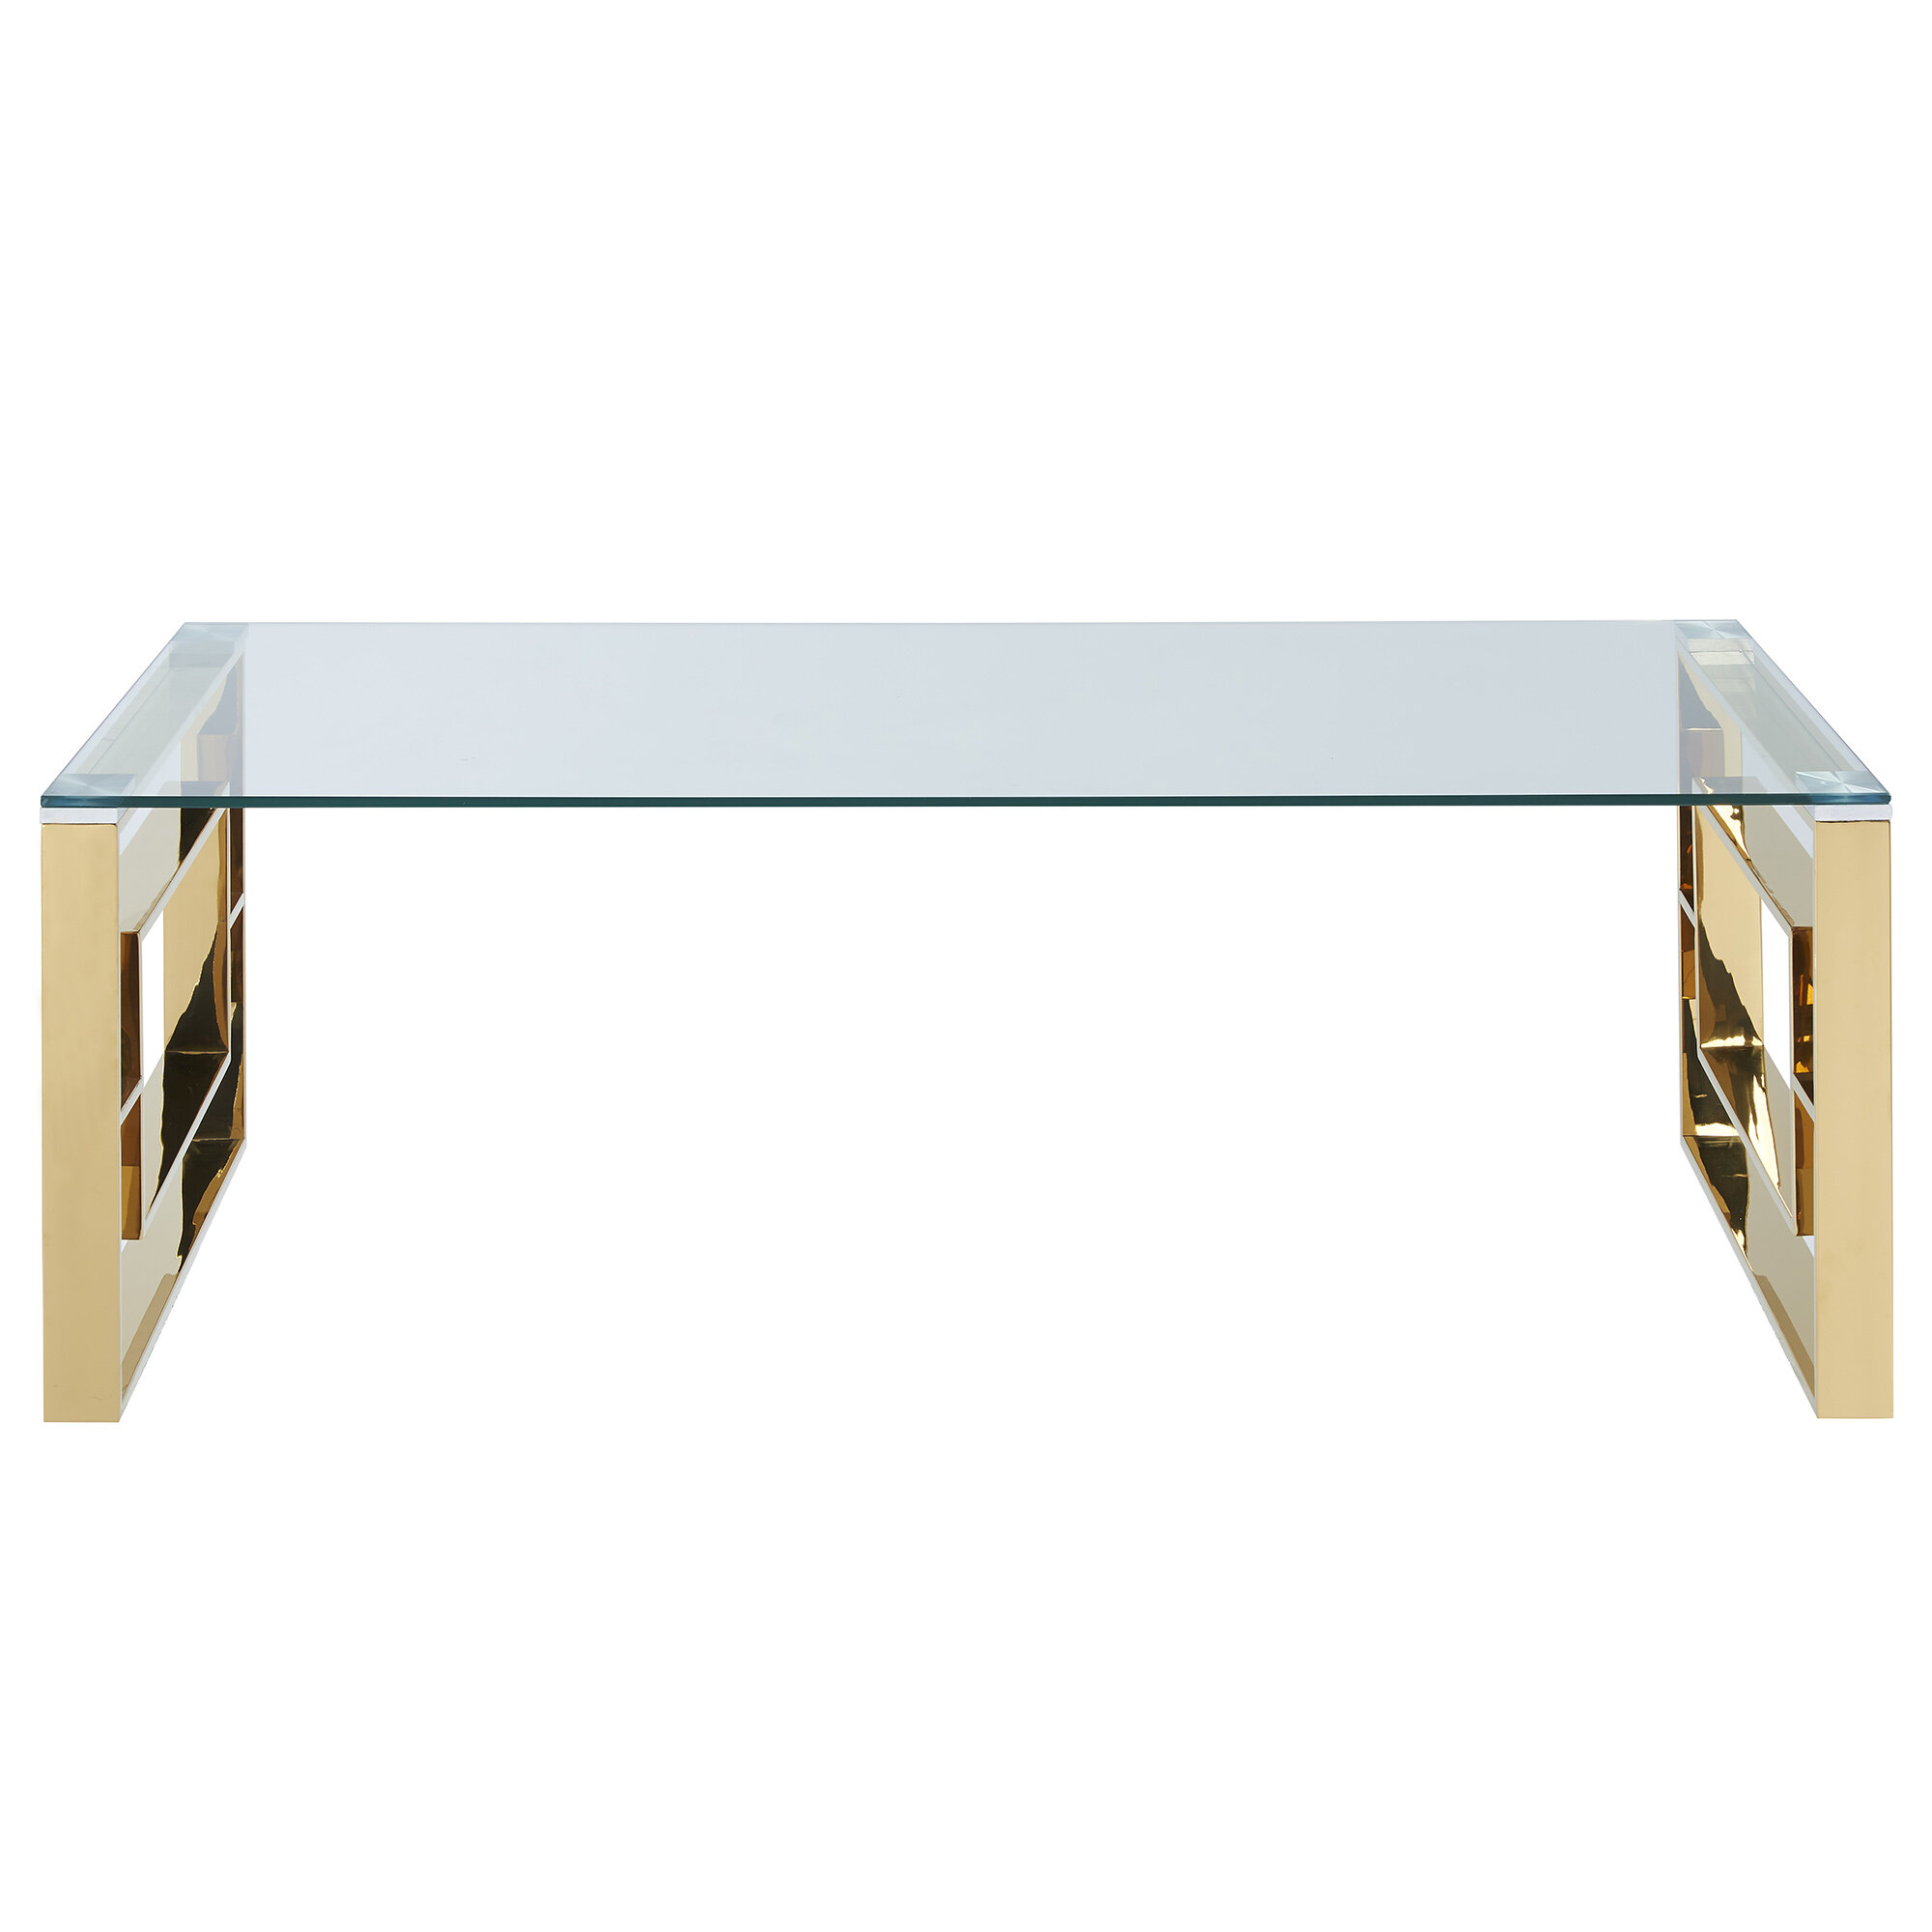 House Of Hampton Menzel Stainless Steel Coffee Table Sets U0026 Reviews |  Wayfair